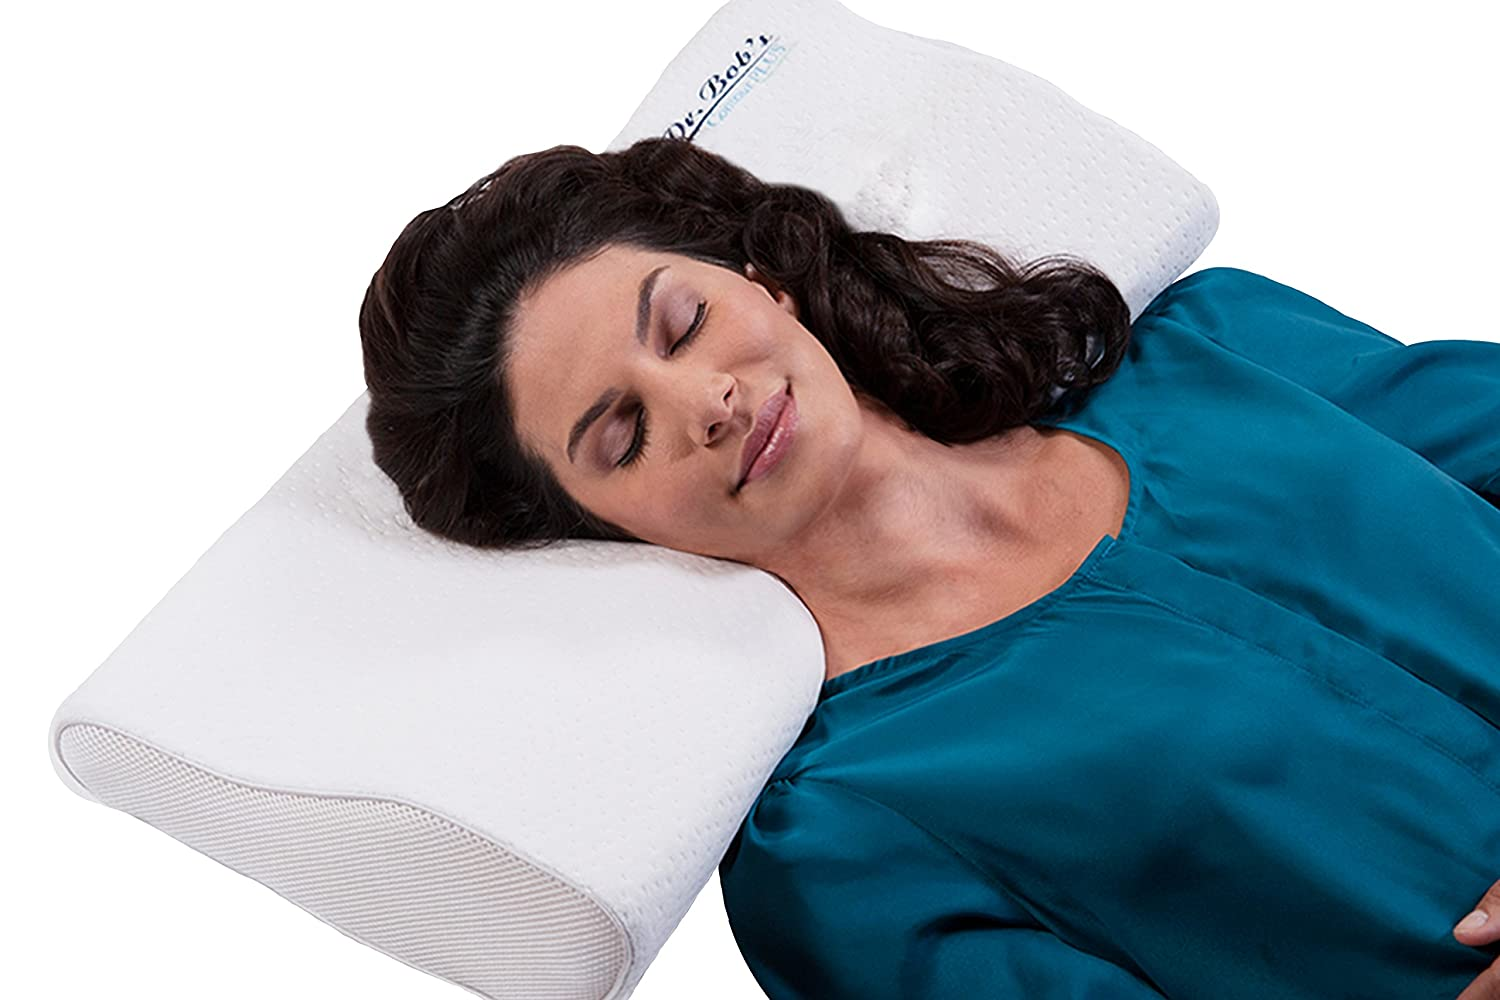 Dr. Bob's Contour PLUS -DOCTOR DESIGNED for Comfort & 